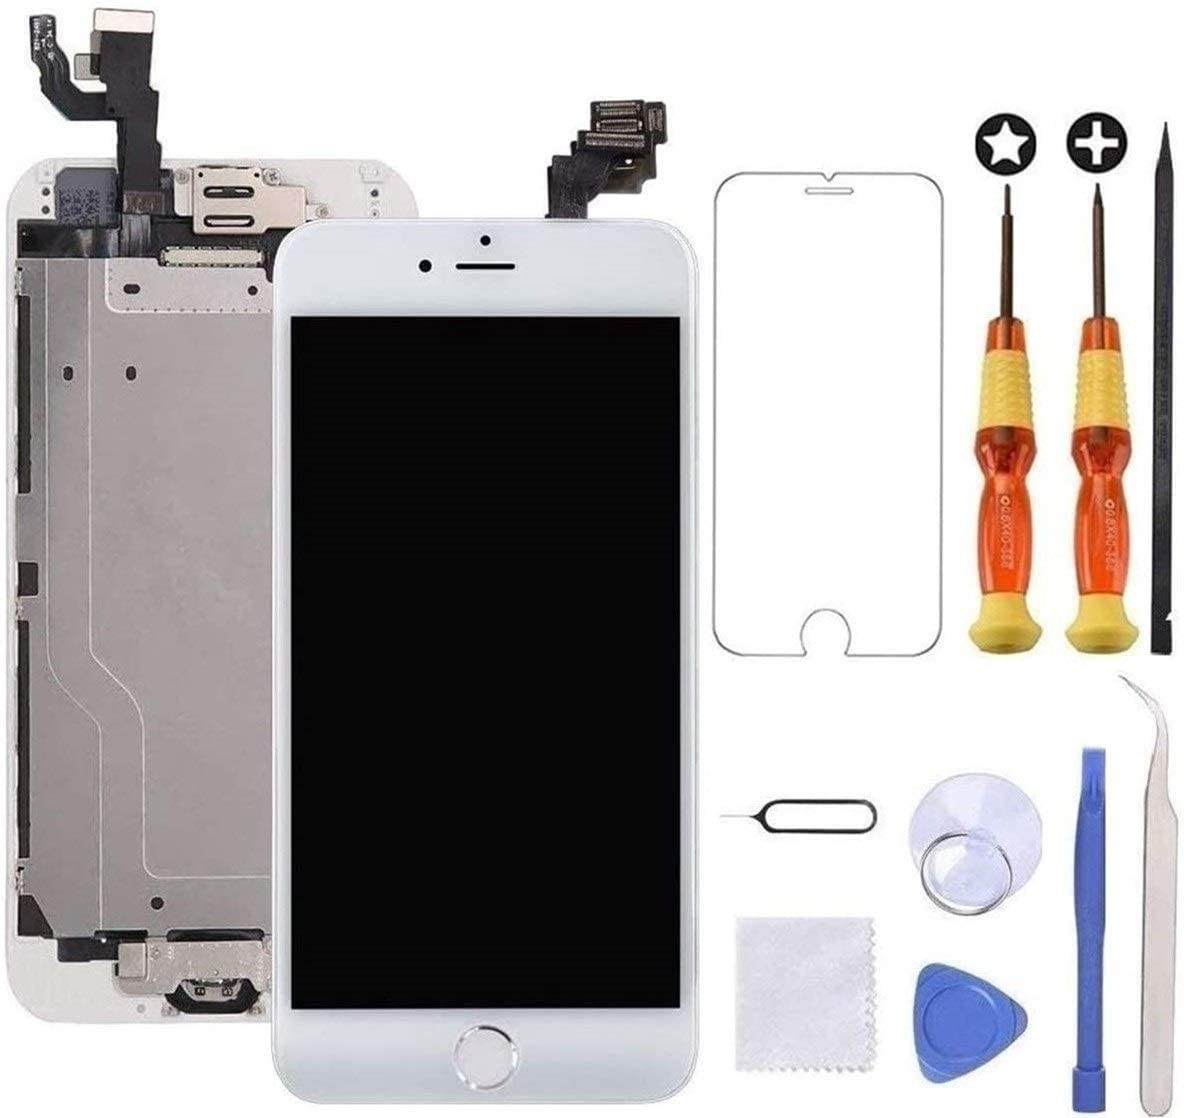 Brinonac for iPhone 6 Plus Screen Replacement White Touch Display LCD Digitizer Full Assembly with Front Camera,Proximity Sensor,Ear Speaker and Home Button Including Repair Tool and Screen Protector